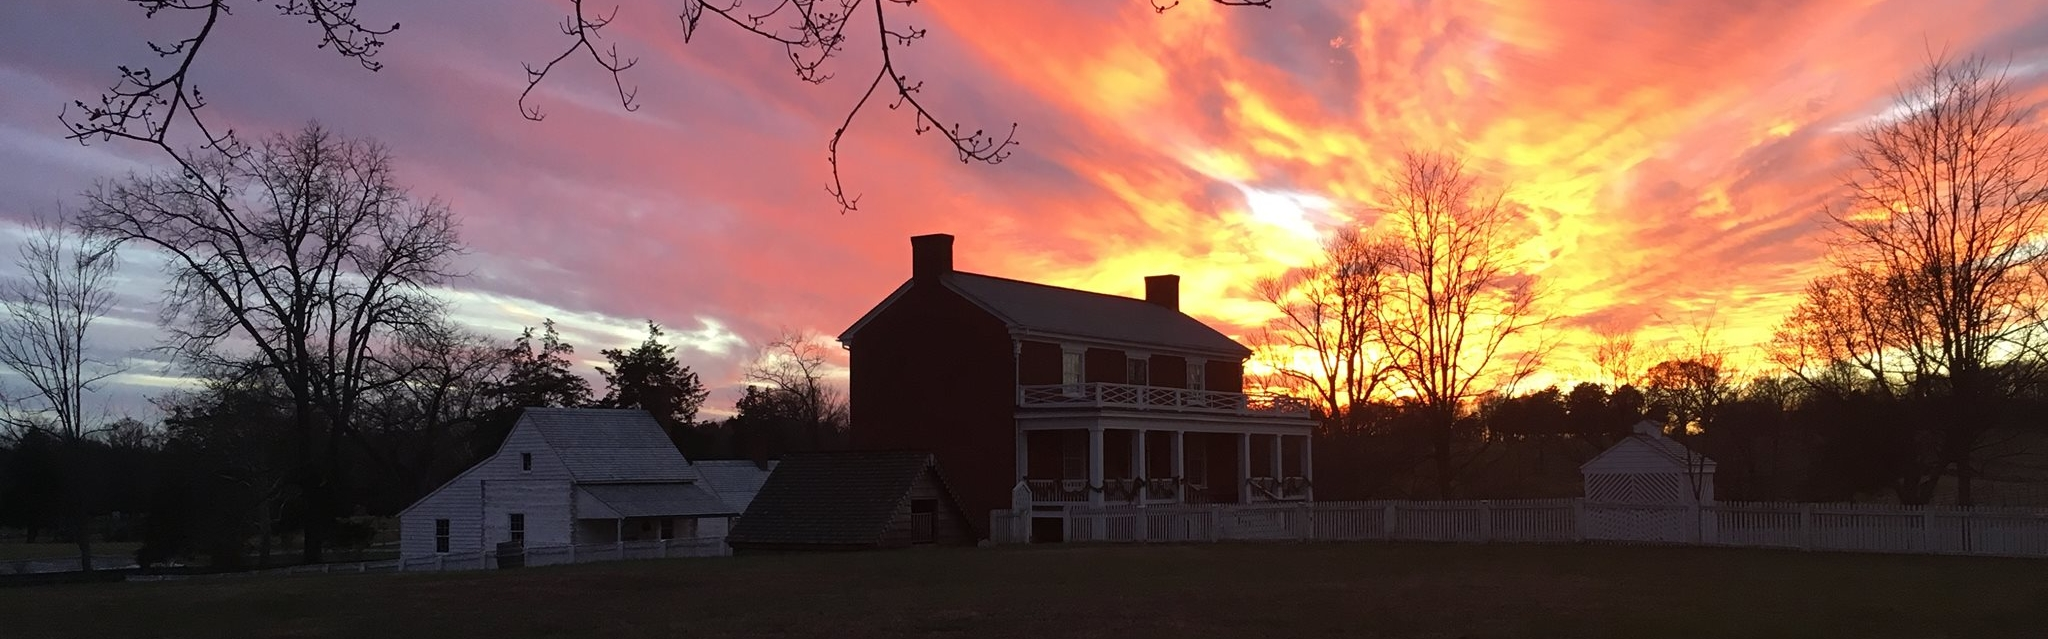 Photo from the appomattox nps facebook page  https://www.facebook.com/pg/AppomattoxNPS/photos/?ref=page_internal